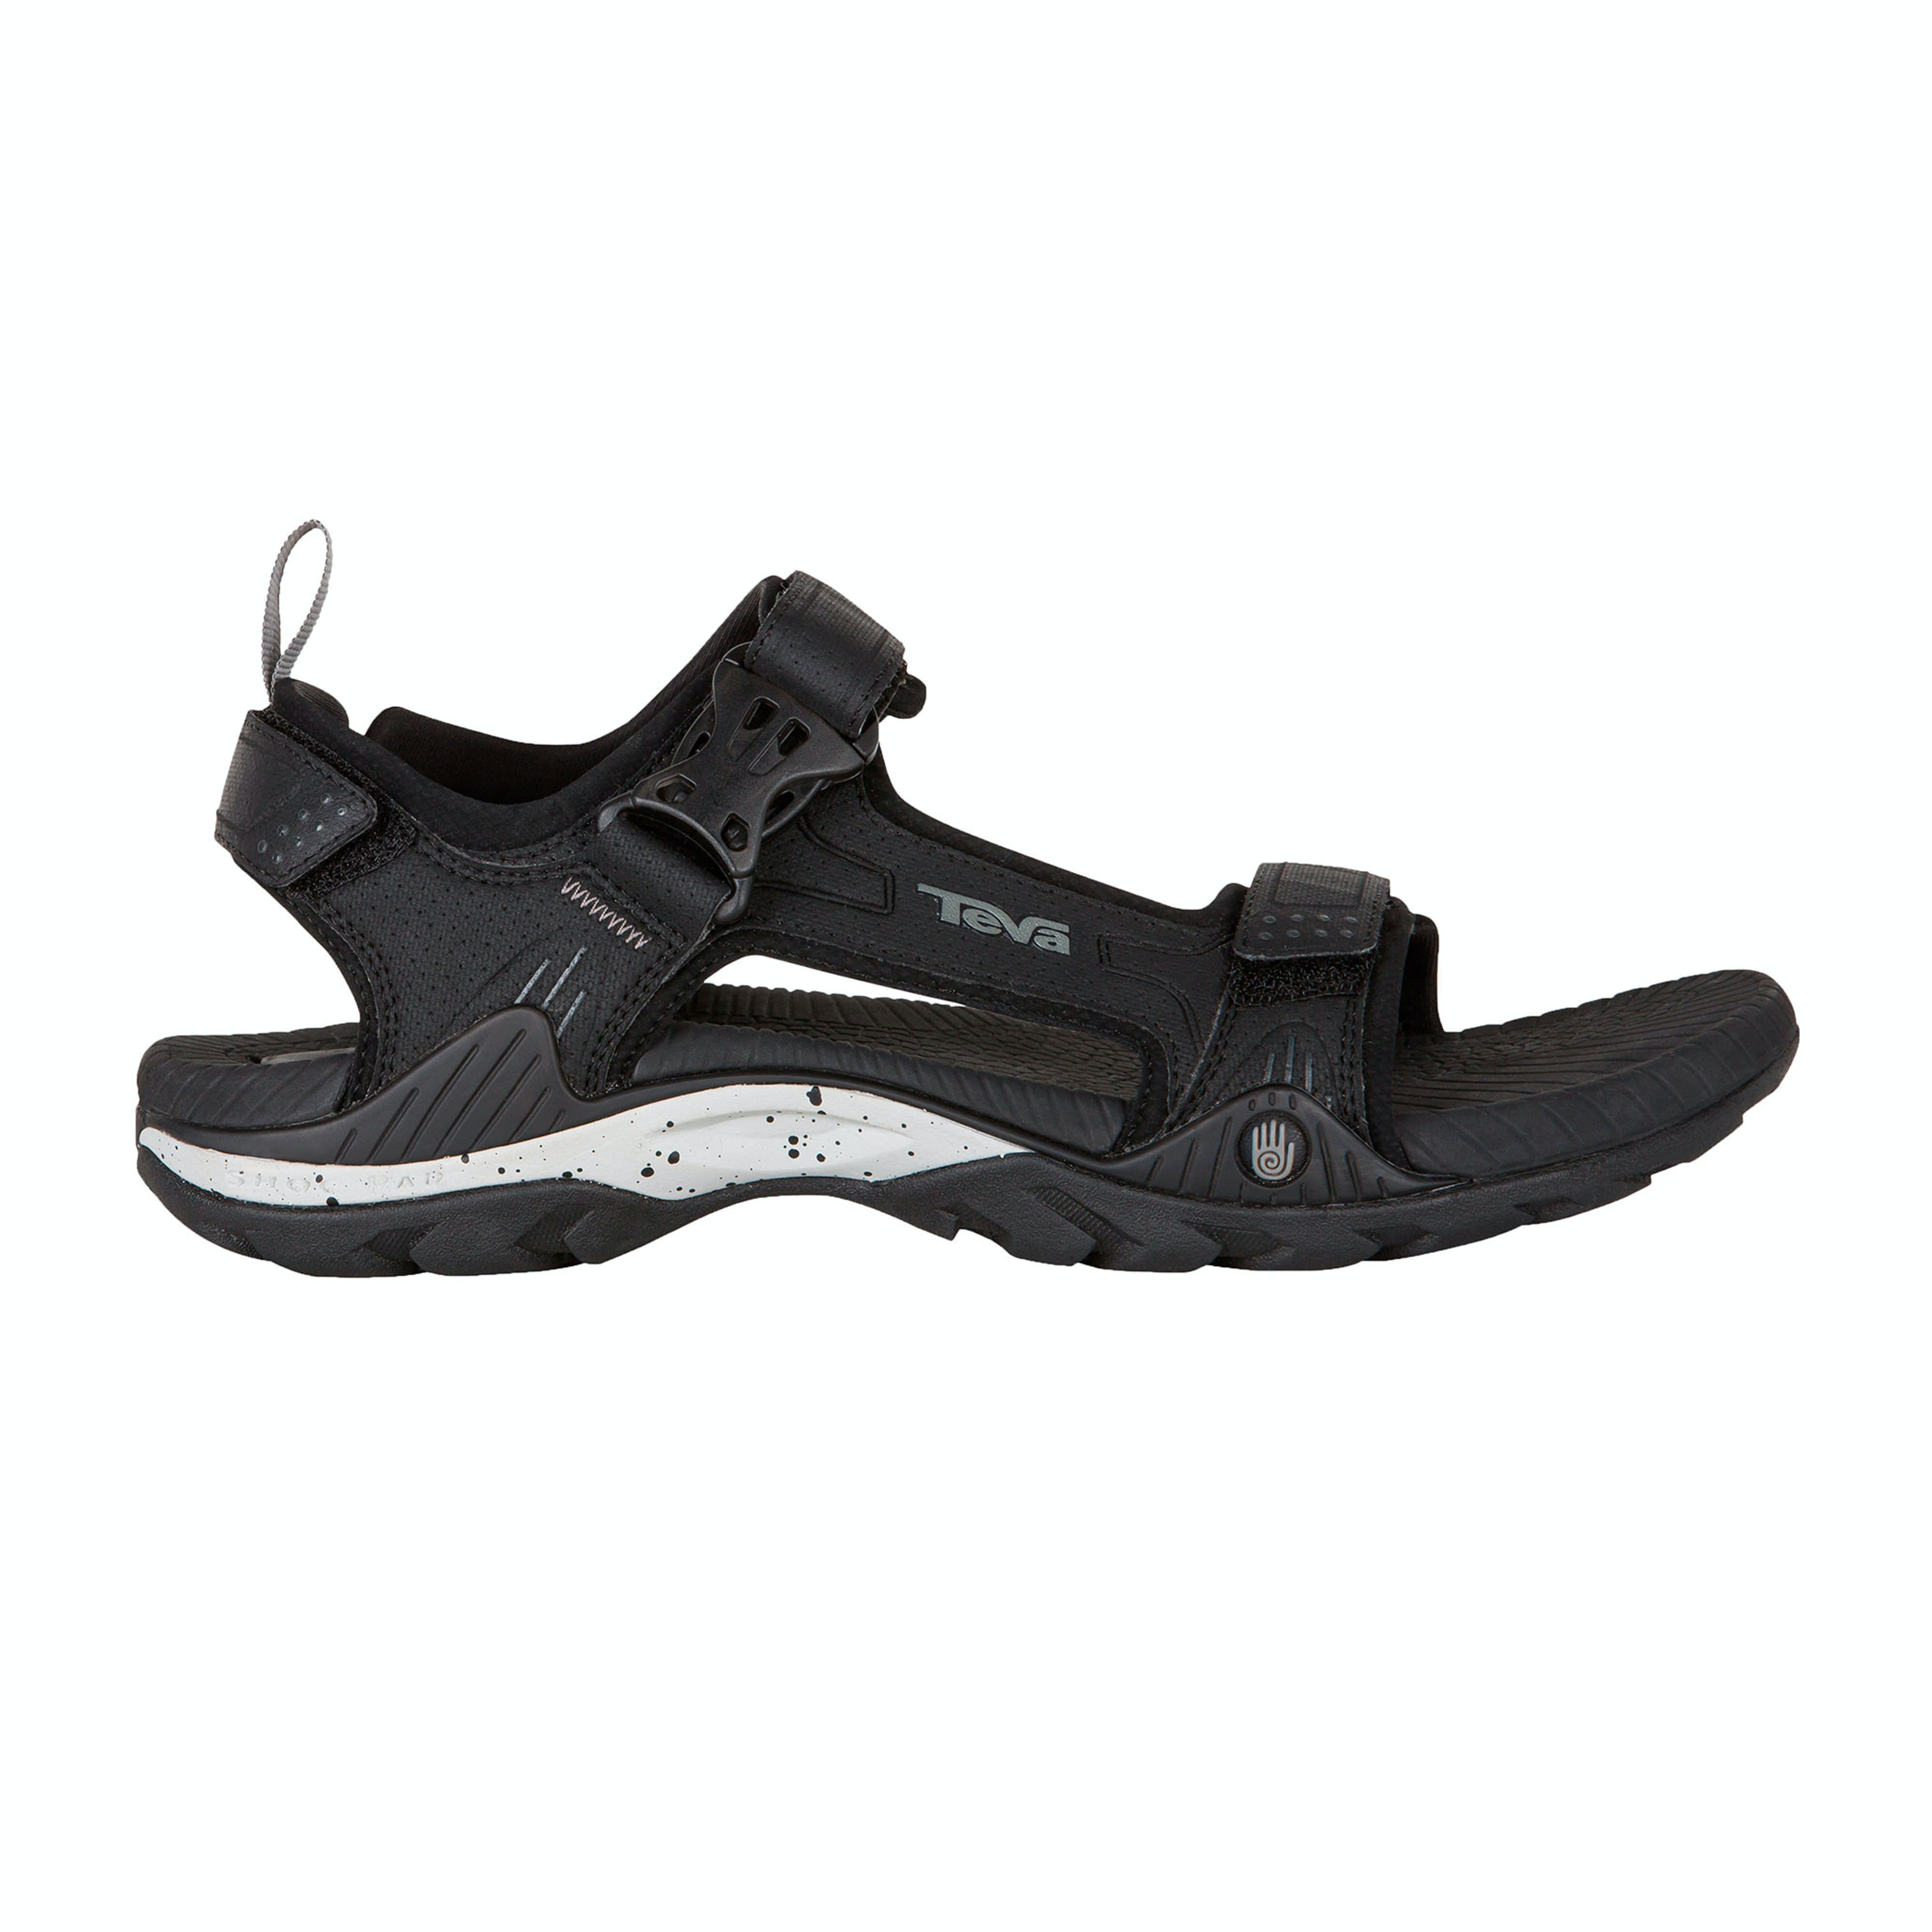 8de248d706 Teva Toachi 2 Men s Sandals - Beluga